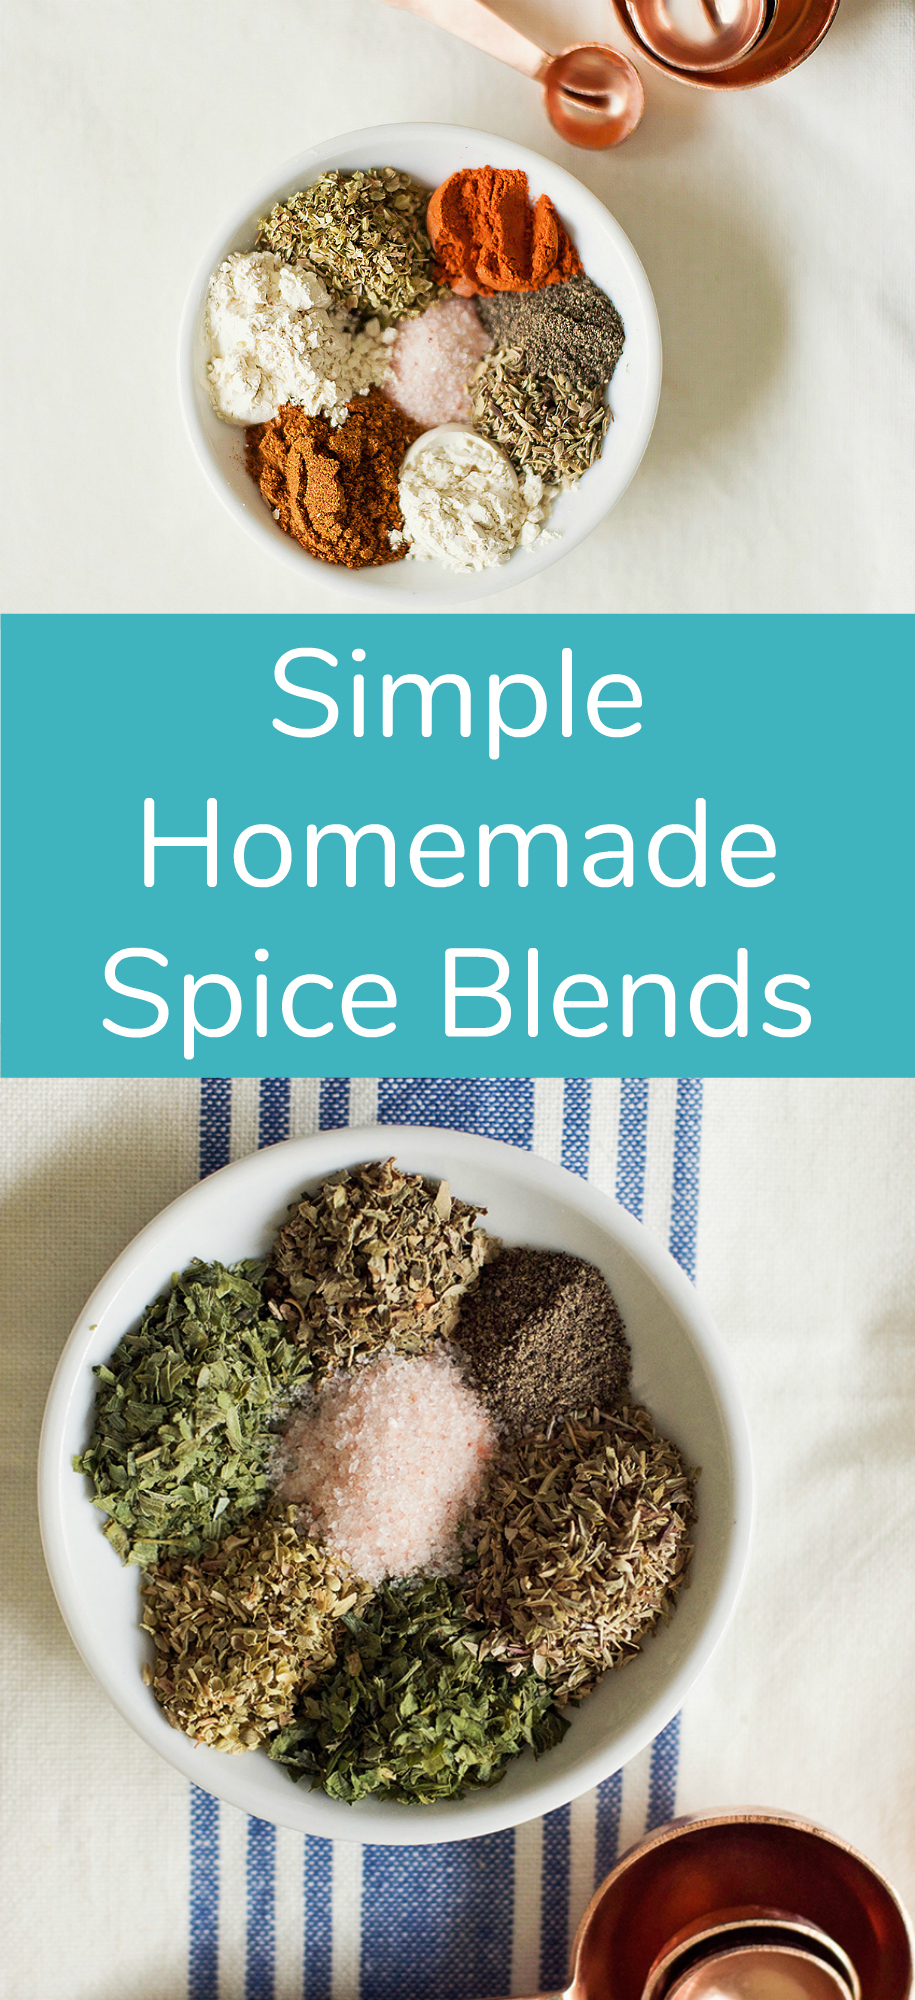 Simple Homemade Spice Blends to Make at Home